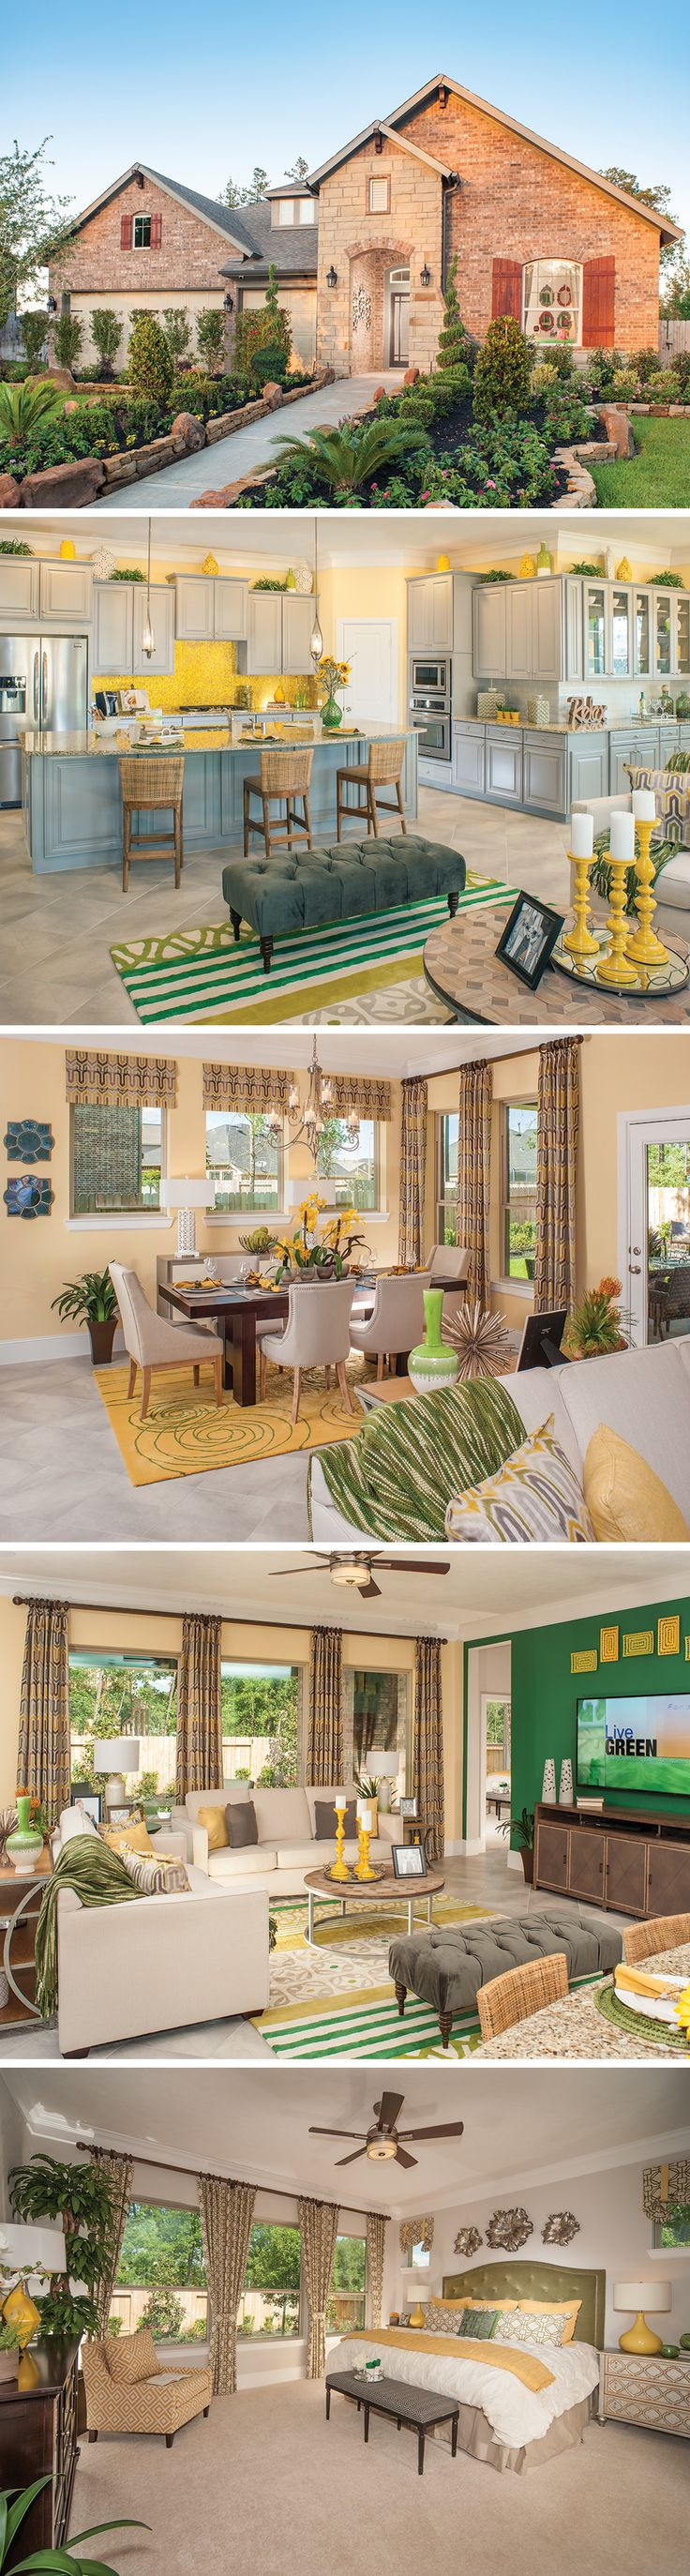 Located in North Houston, The Bynum is a stunning new floor plan near the North Energy Corridor! This 1-story new home has 4 spacious bedrooms and the open floor plan is perfect for celebrating those special occasions with friends and family. And we just love how the décor and wall paint colors pop!